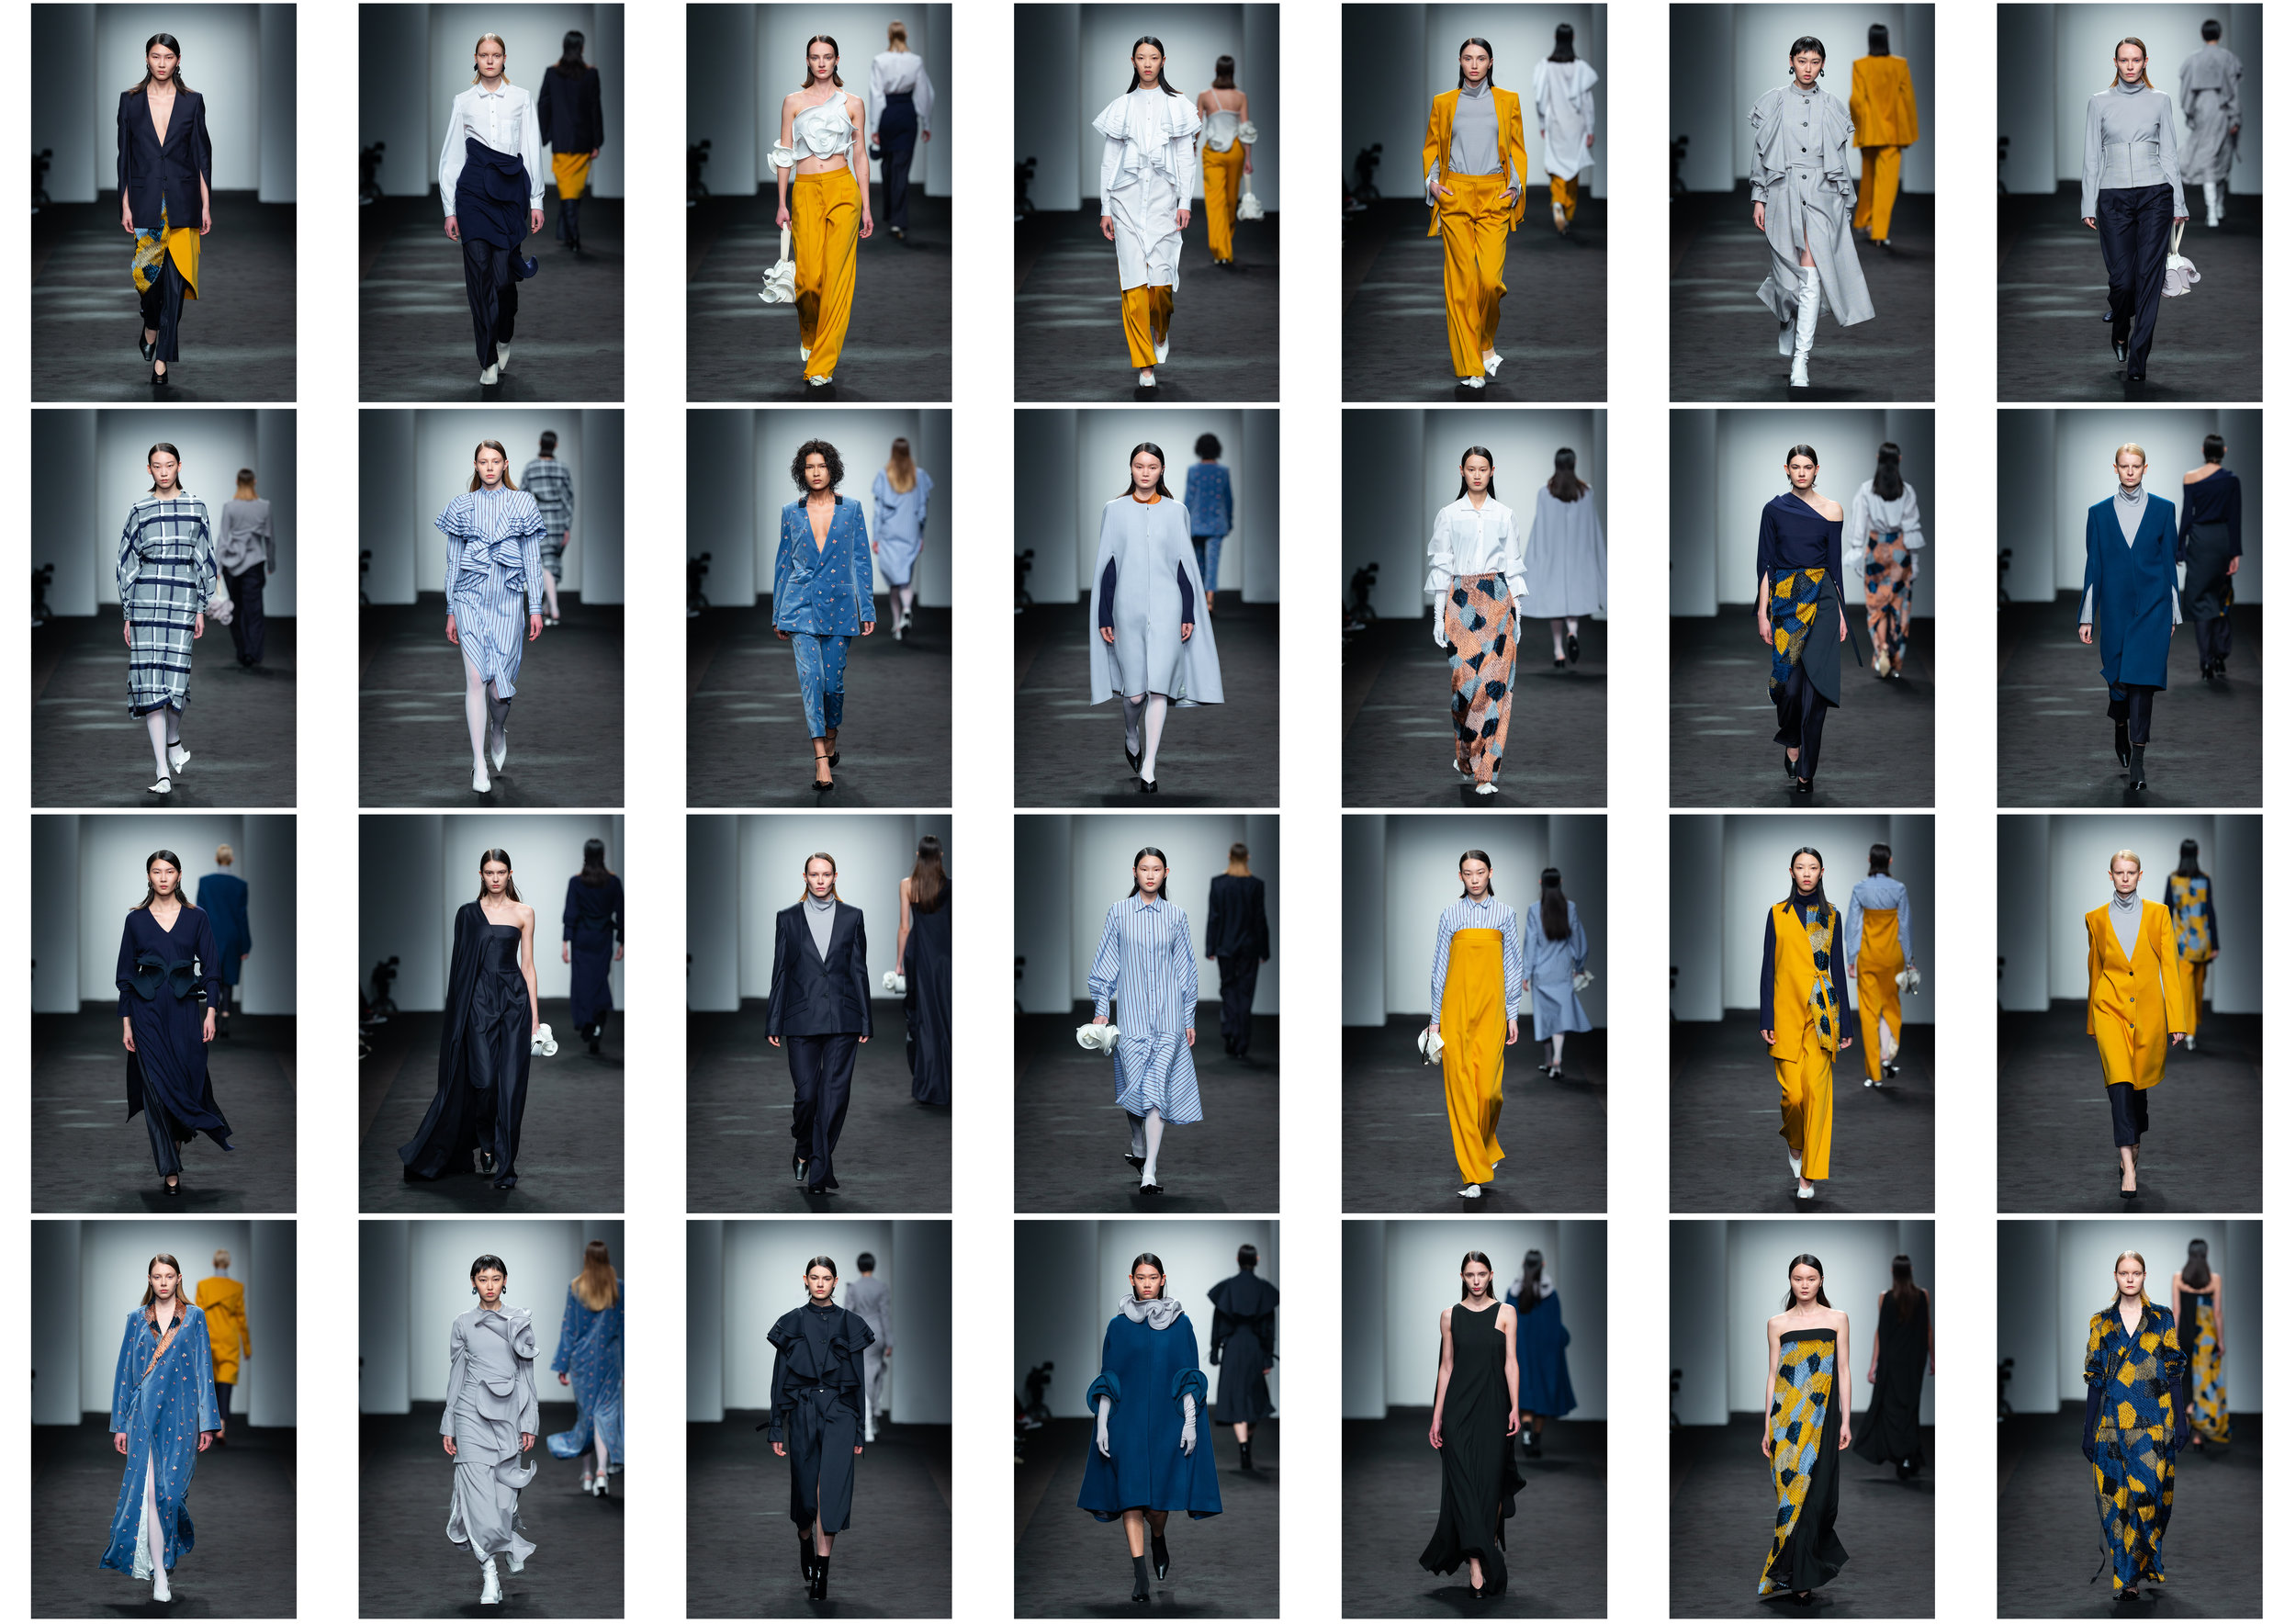 AW19-AT-ONE-MENT-Runway.jpg